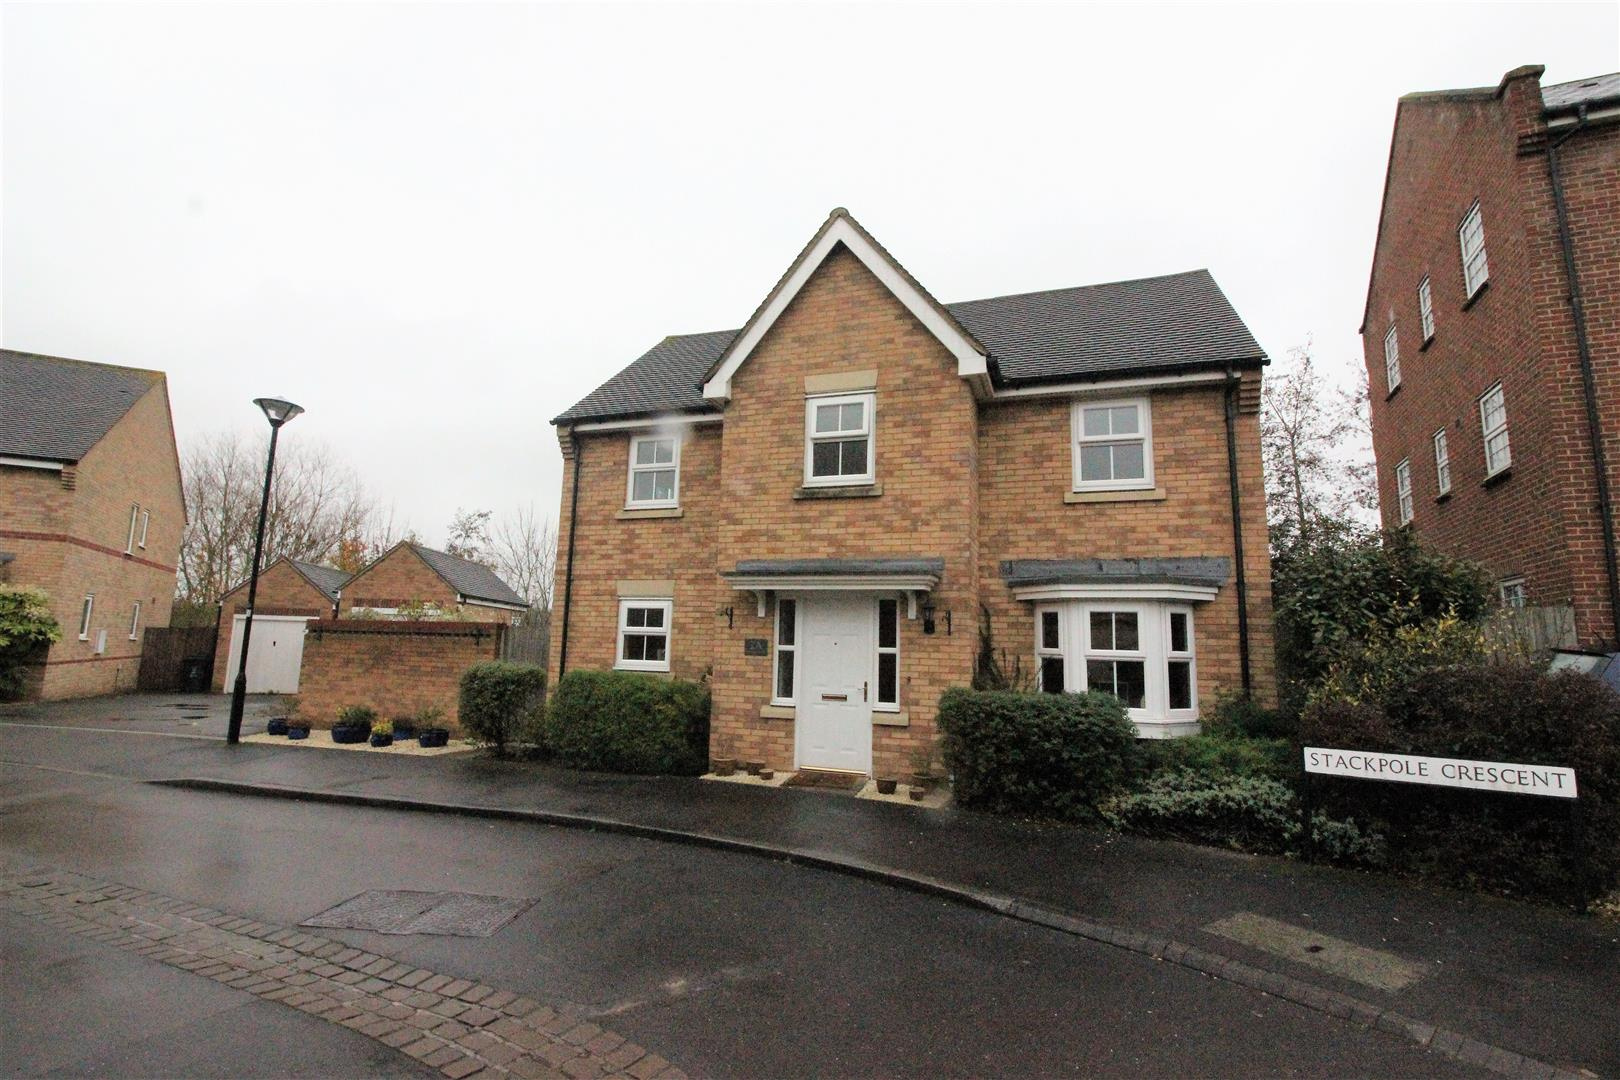 4 Bedrooms Detached House for sale in Stackpole Crescent, Swindon